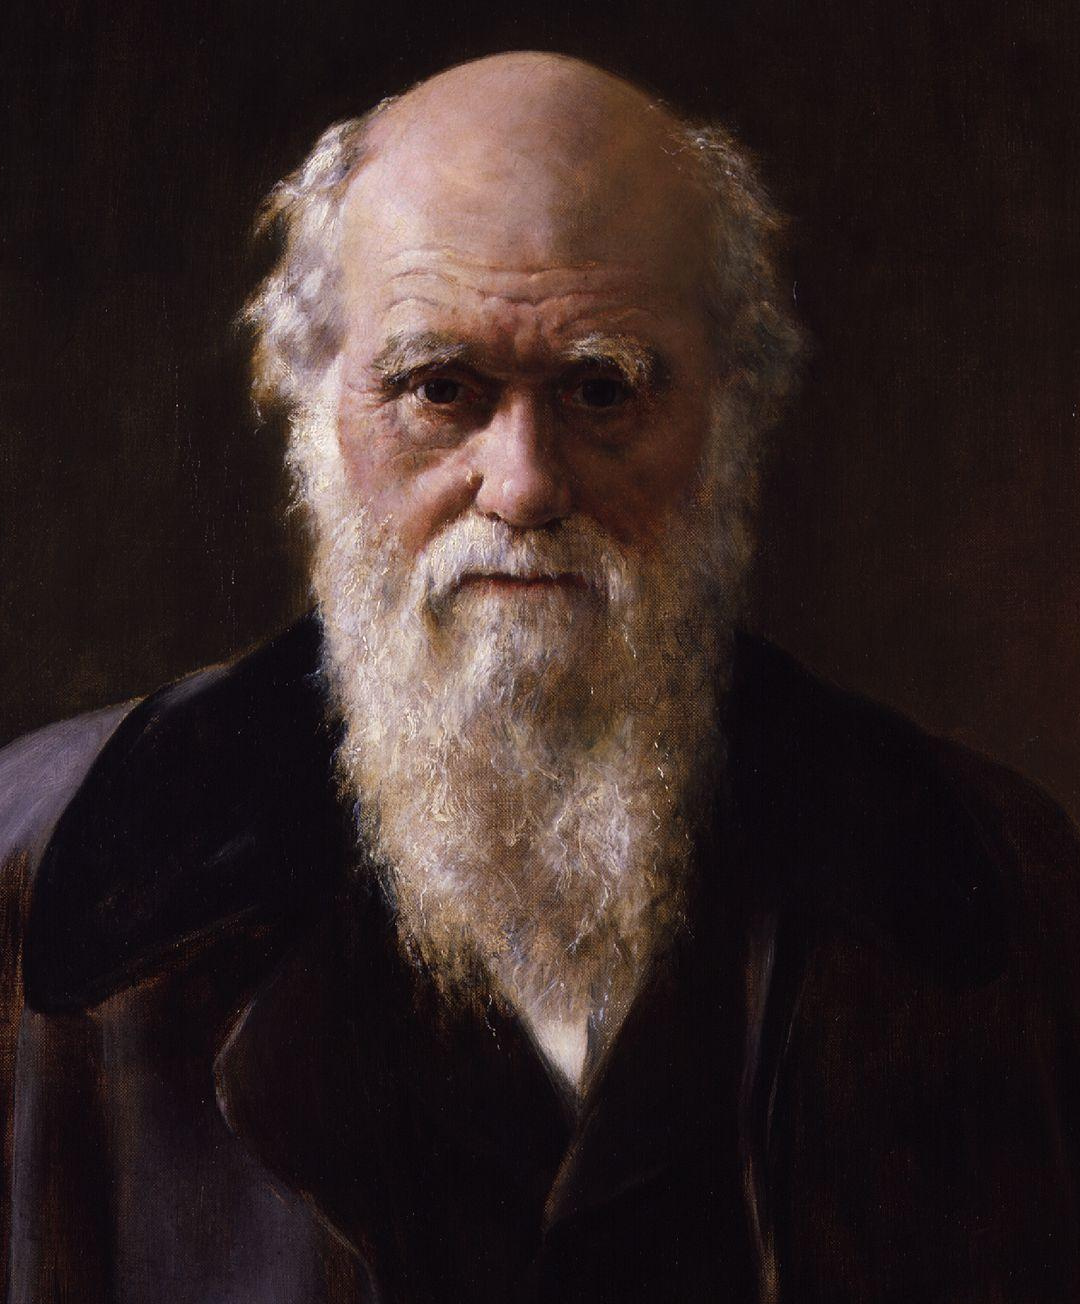 external image Charles_Robert_Darwin_by_John_Collier_cropped.jpg